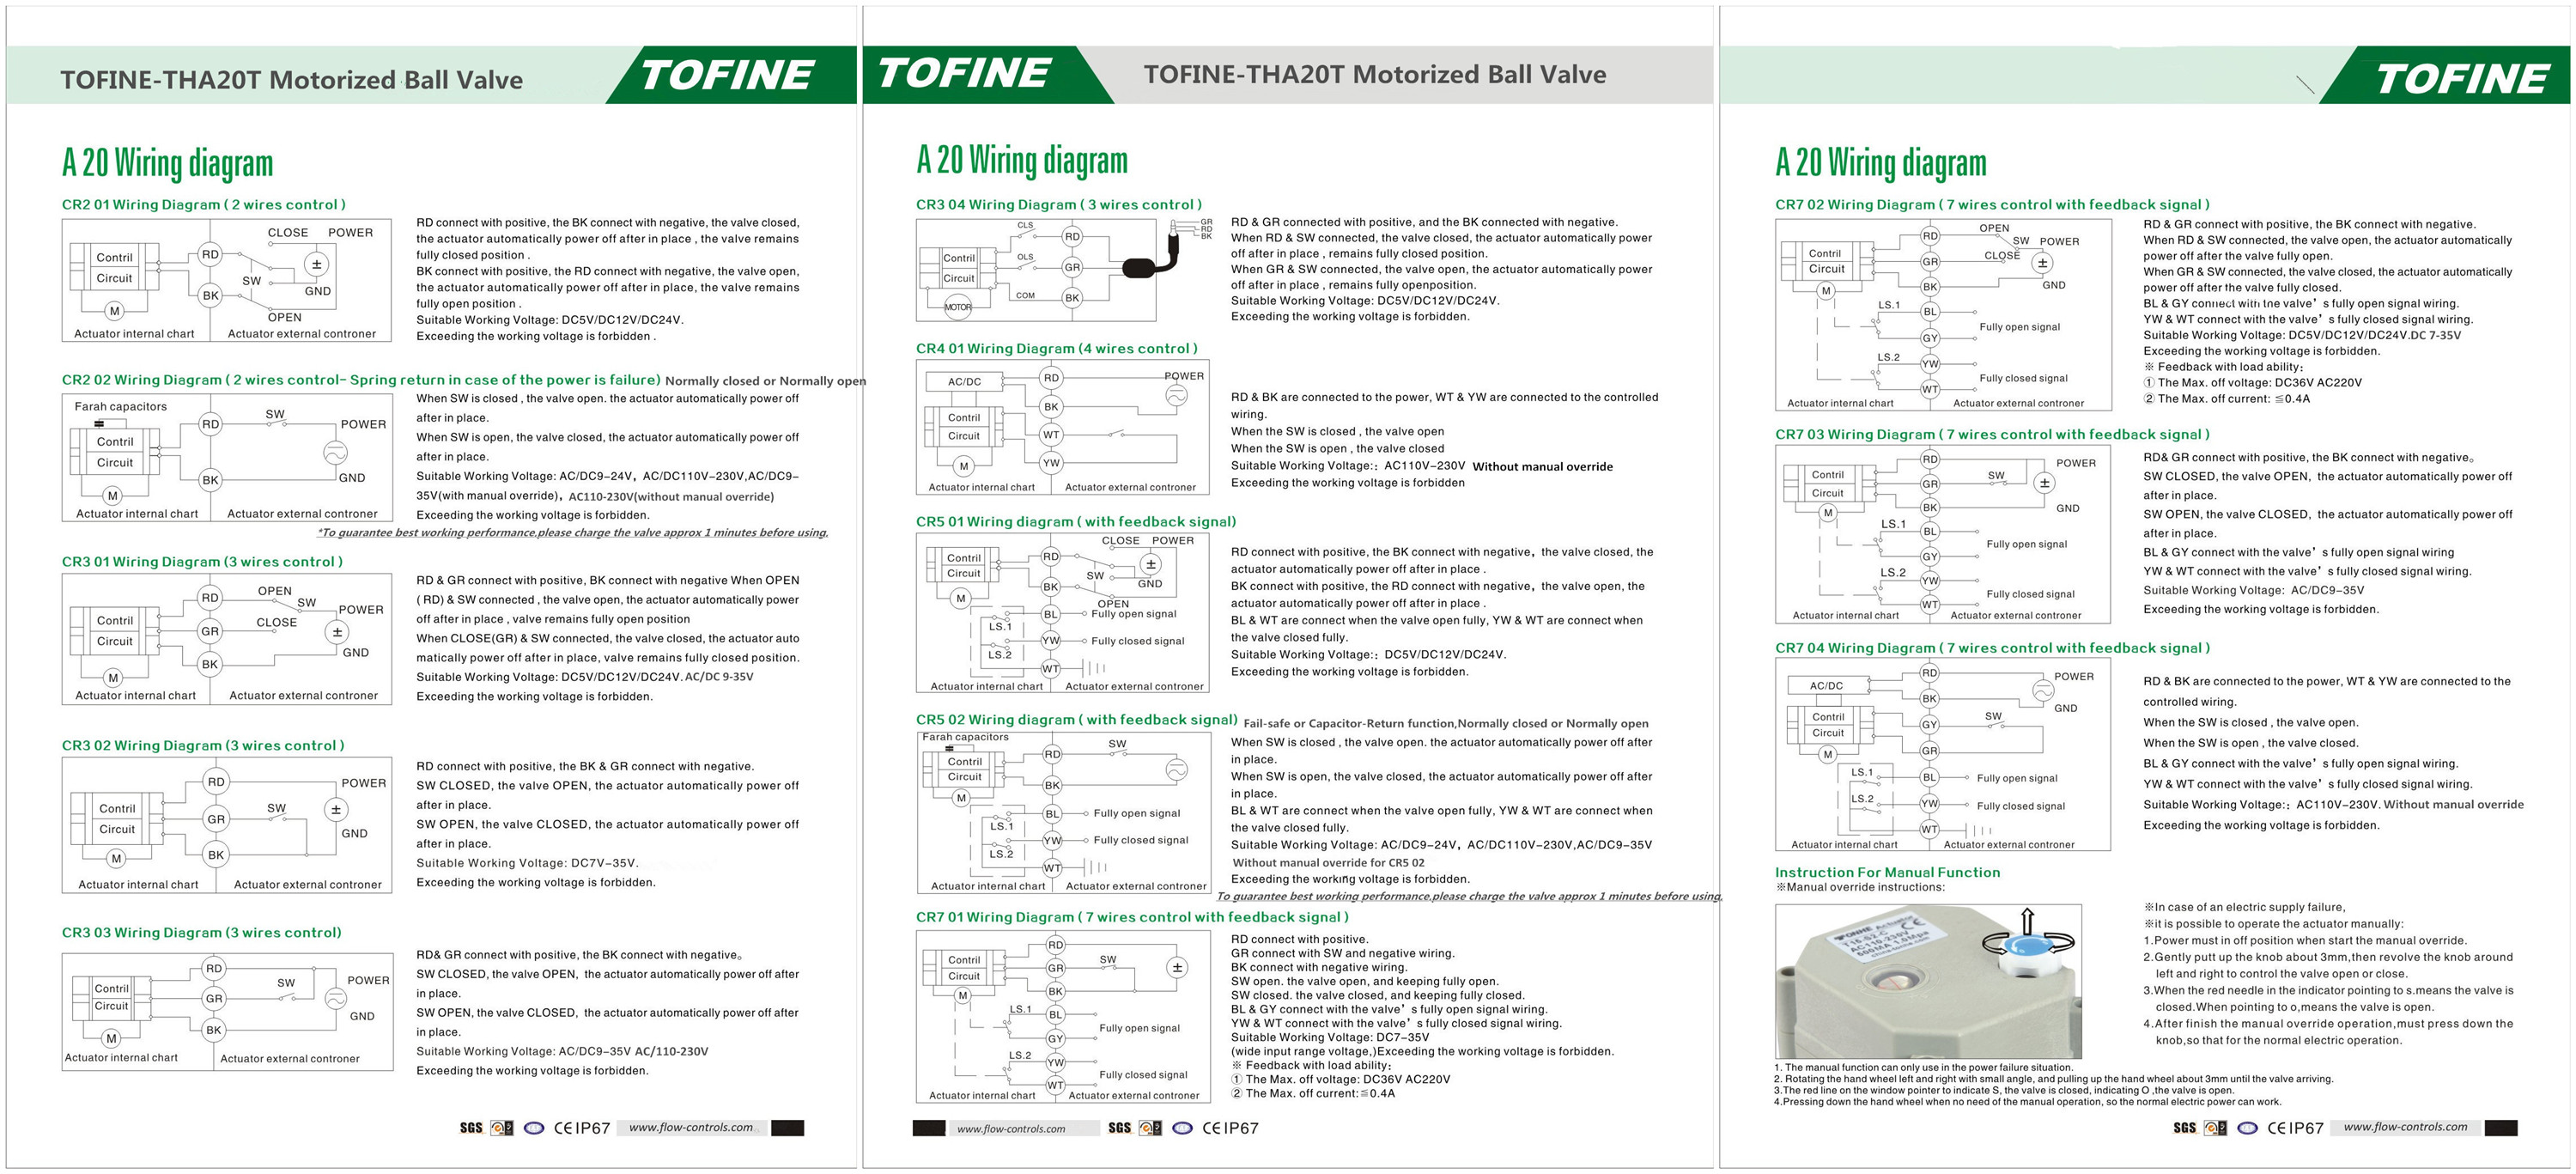 wirings for tofine tha20t motorized ball valves technical file